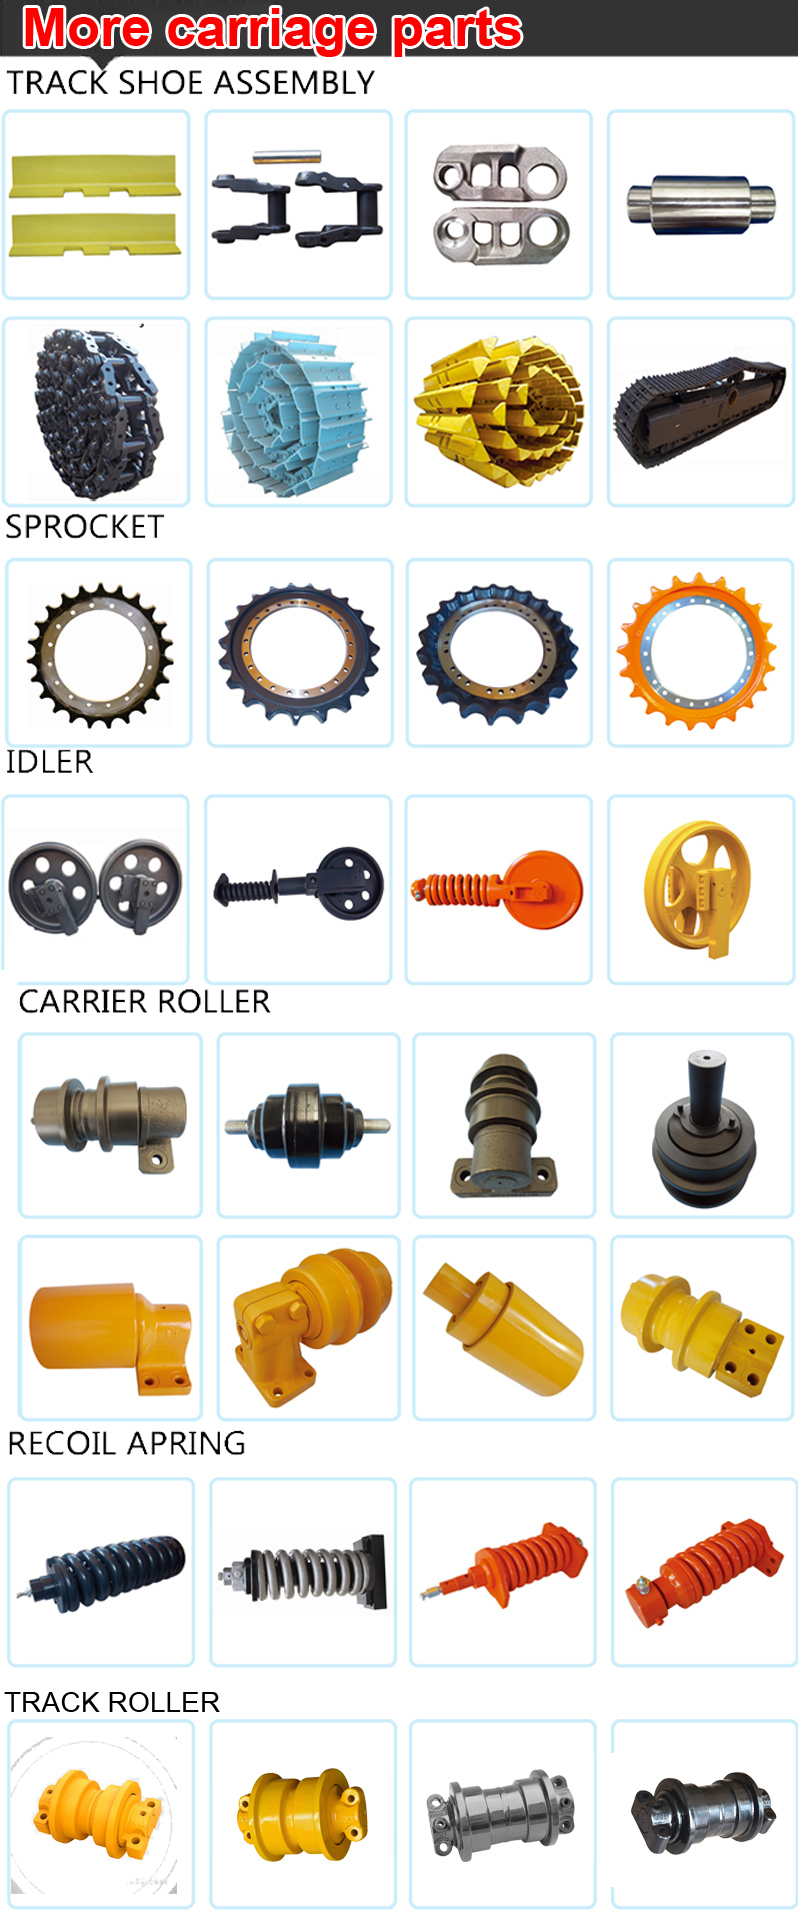 Roller dozer shoes - Competitive Price Forged Bull Dozer Track Roller Bd2g Bilateral E Track Roller Idler Fitting Assembly